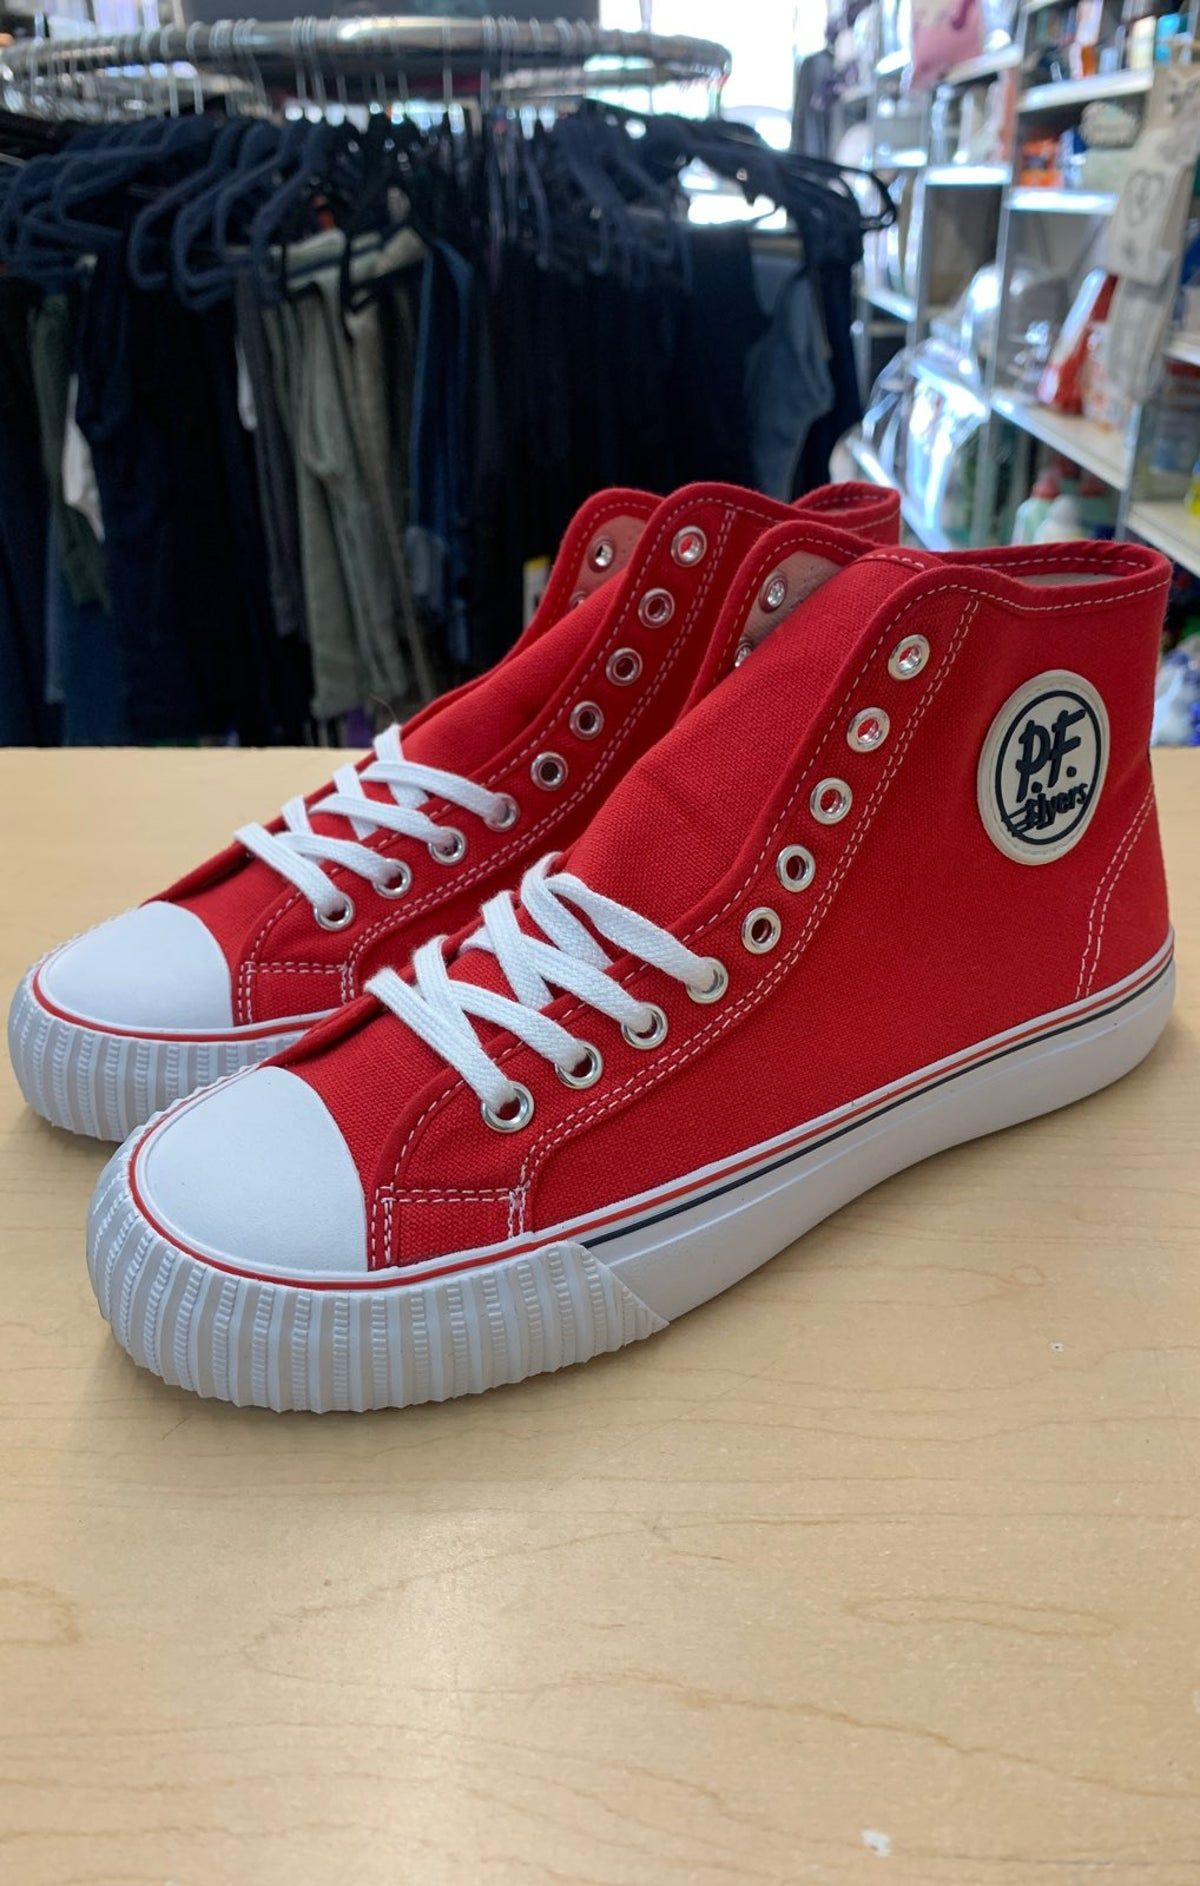 Pin By Alex Bedolla On Shoes Thinking To Buy In 2020 Chucks Converse Chuck Taylor Sneakers Pf Flyers